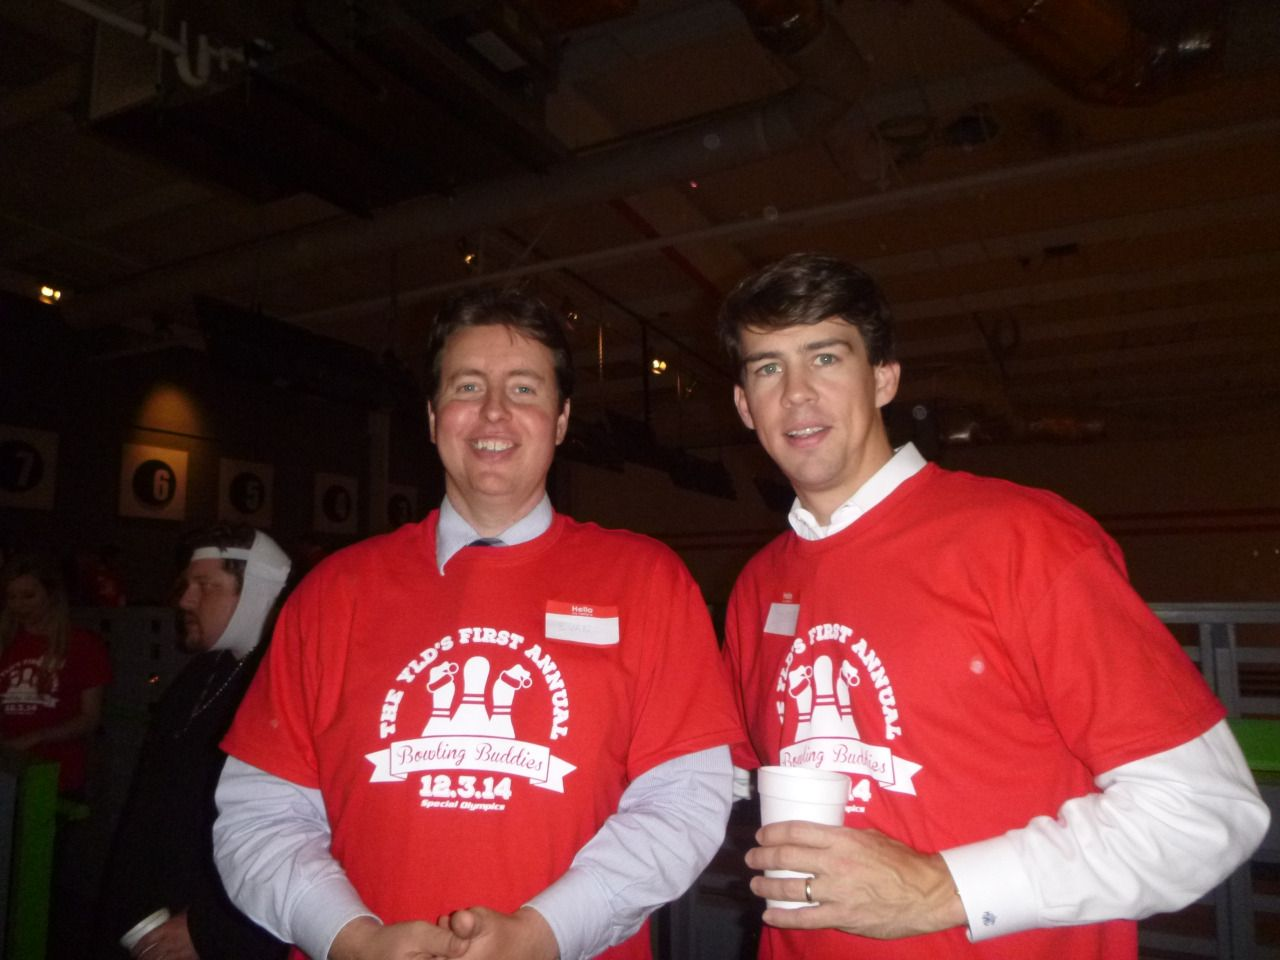 #Lawyer Evan Guthrie with Cooper Wilson of Hood Law Firm at the South Carolina Bar Young Lawyers Division Bowling Buddies event featuring young attorneys cheering on South Carolina Special Olympics athletes on as they bowl at The Alley in Charleston, SC on Wednesday December 3, 2014